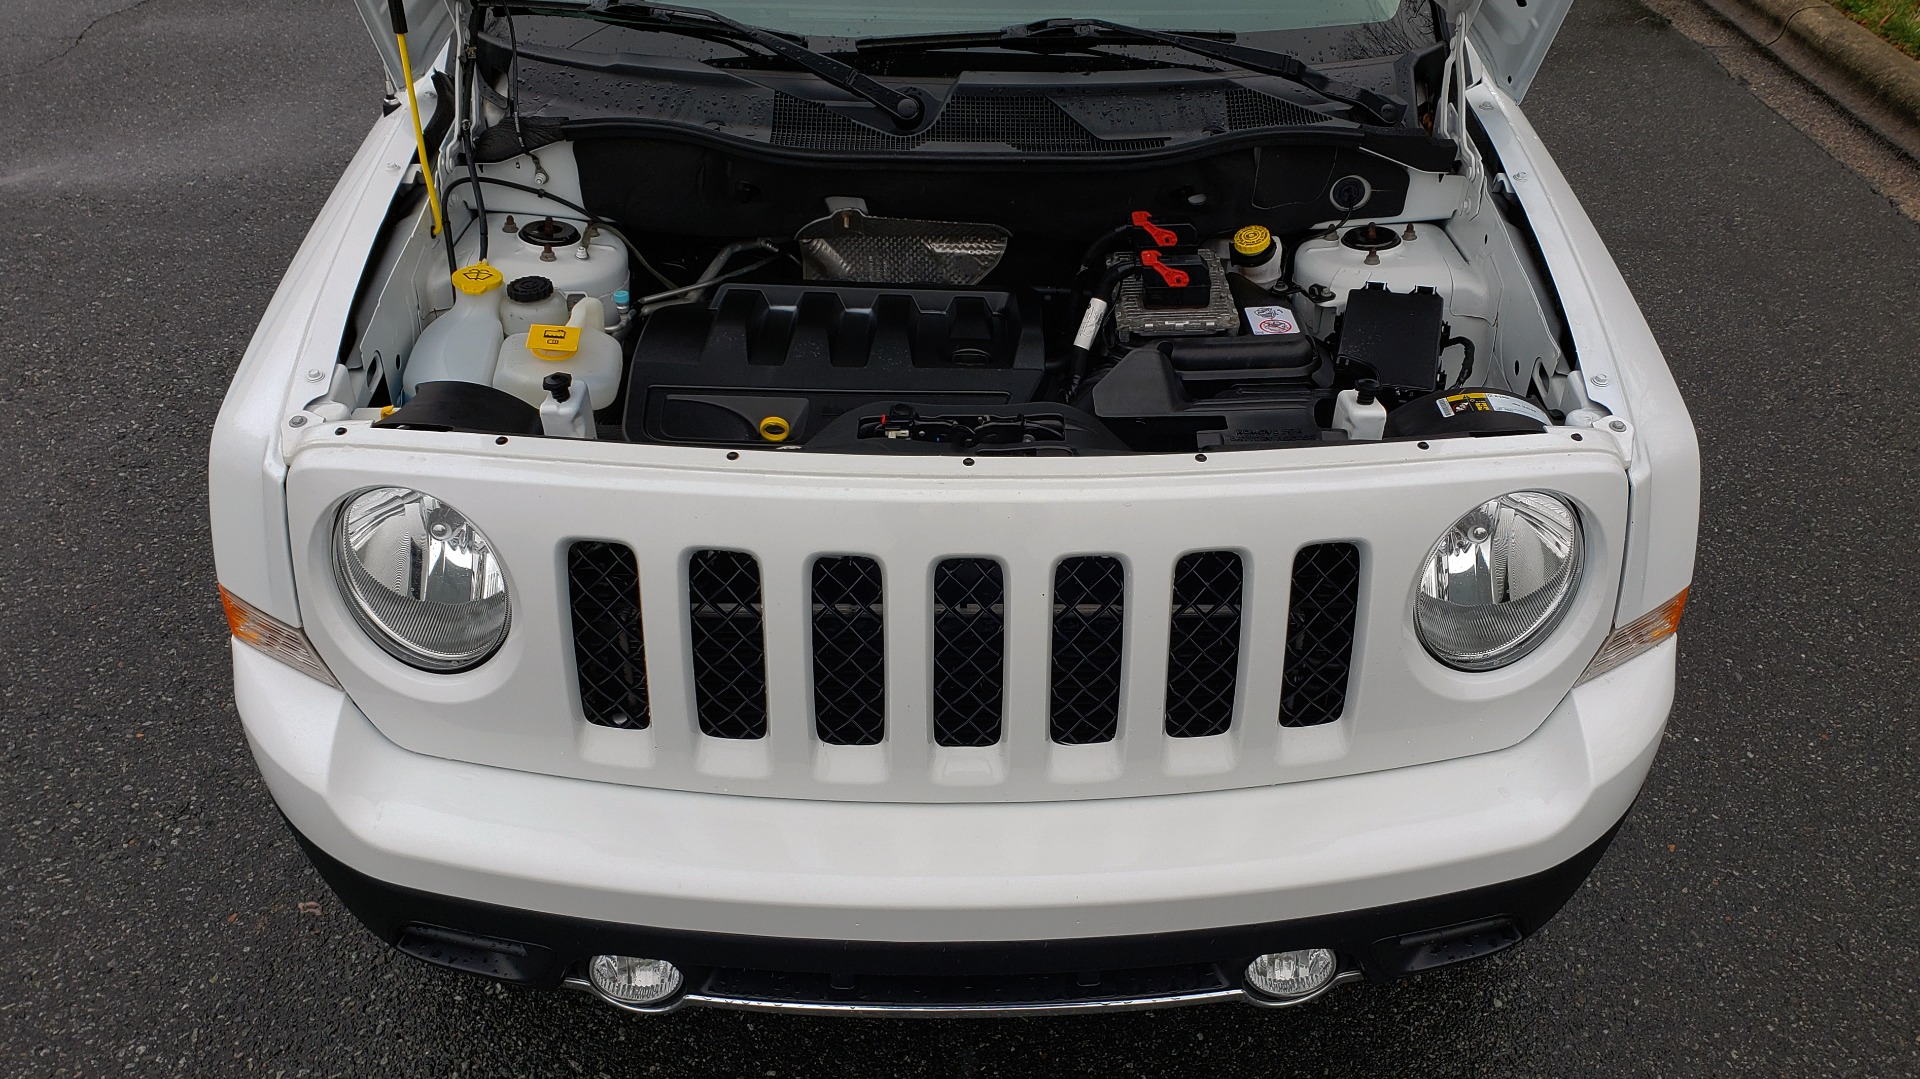 Used 2016 Jeep PATRIOT HIGH ALTITUDE EDITION 4WD / SUNROOF / 4-CYL / 6-SPD AUTO for sale $14,695 at Formula Imports in Charlotte NC 28227 10